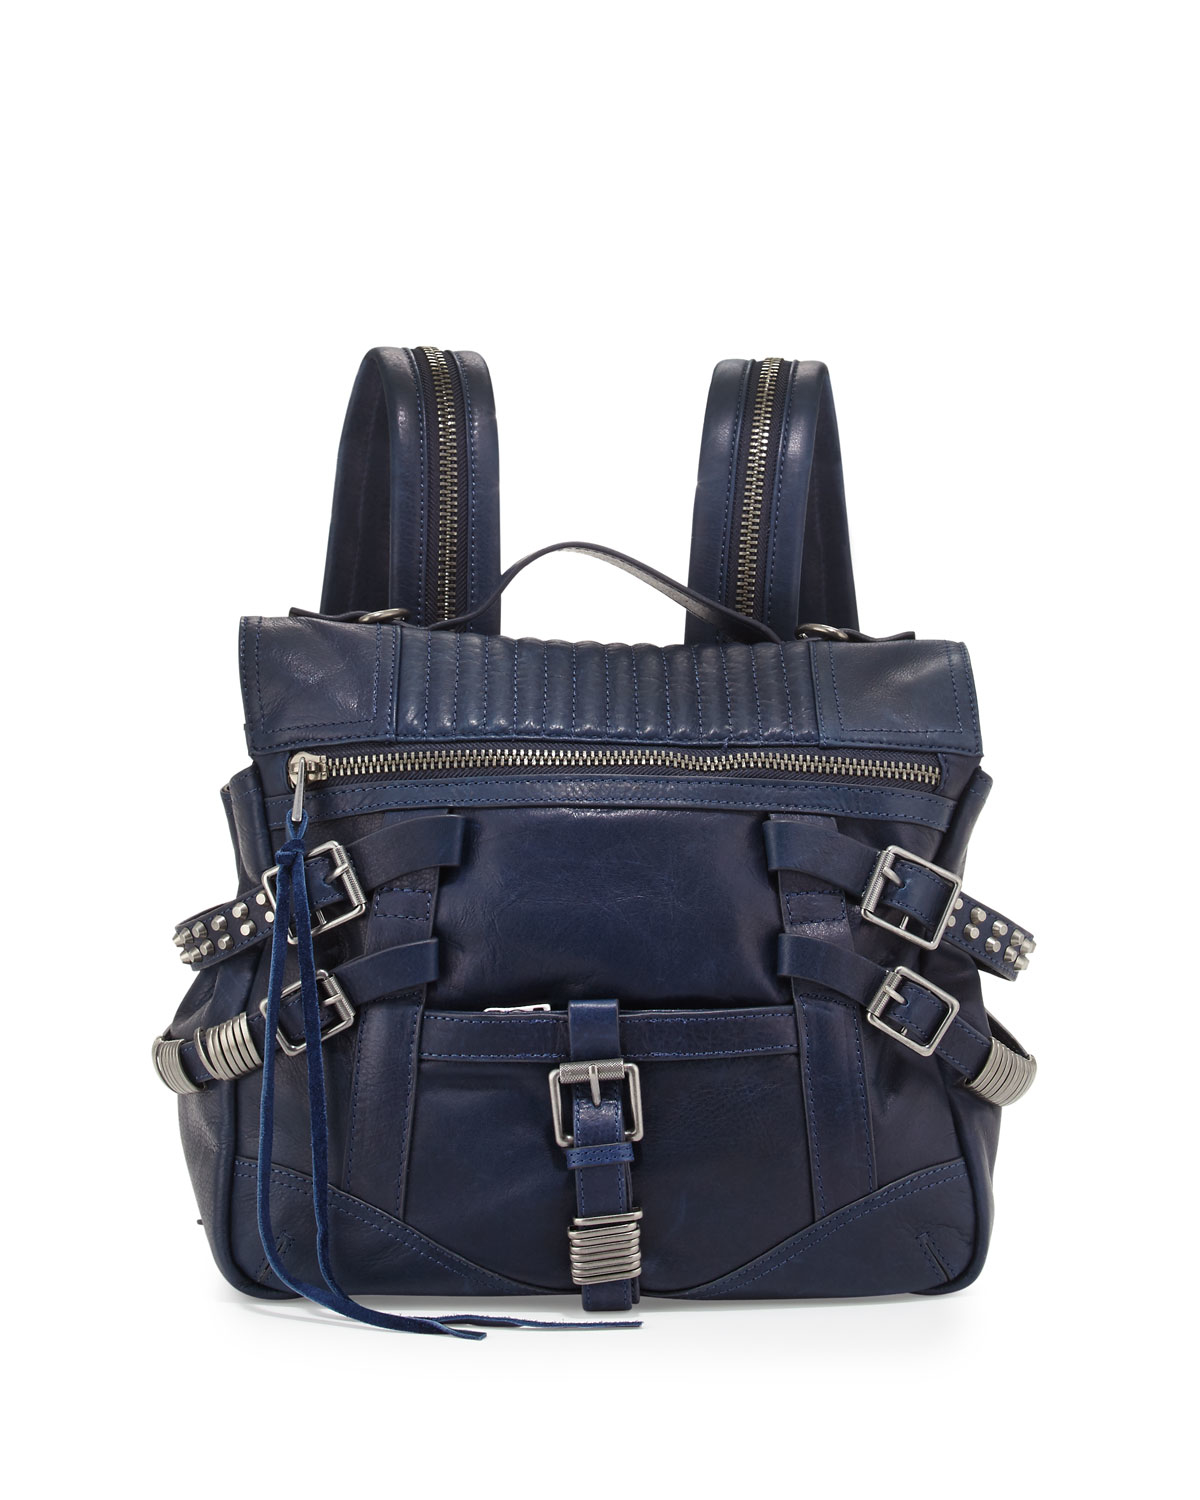 Lyst - Ash Trix Leather Buckle Backpack in Blue